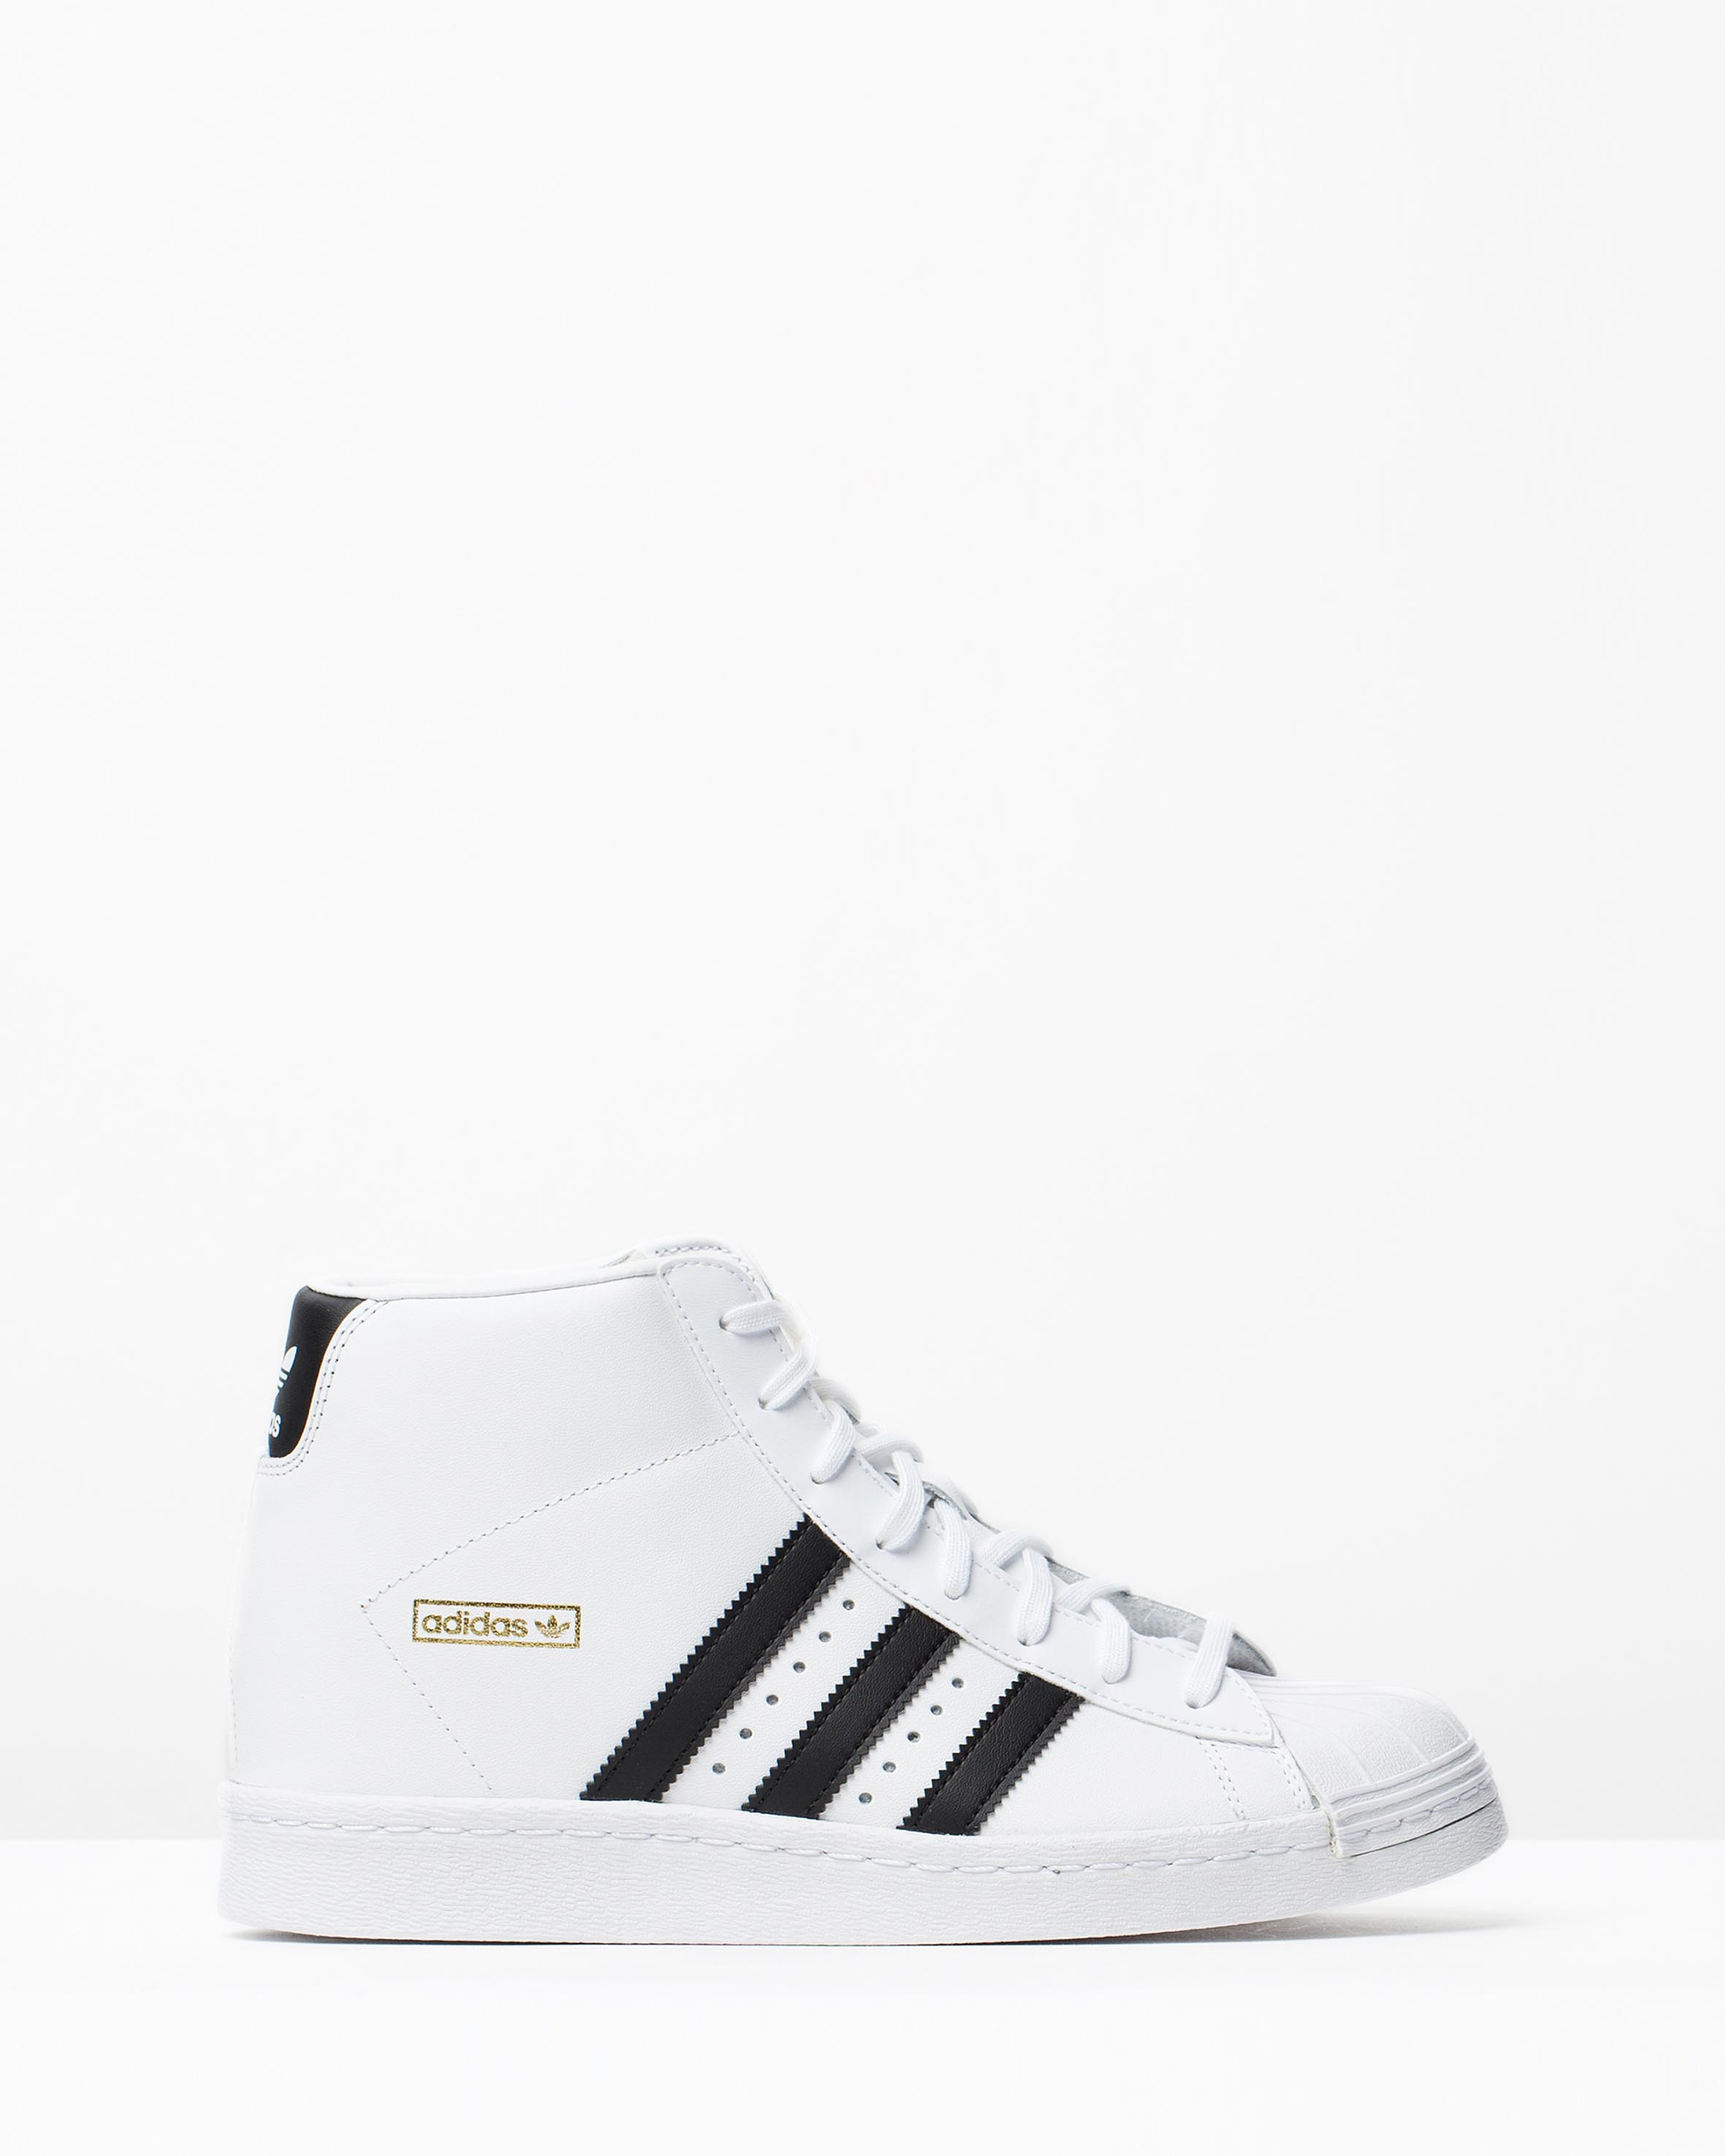 adidas shoes for girls high tops white losgranados